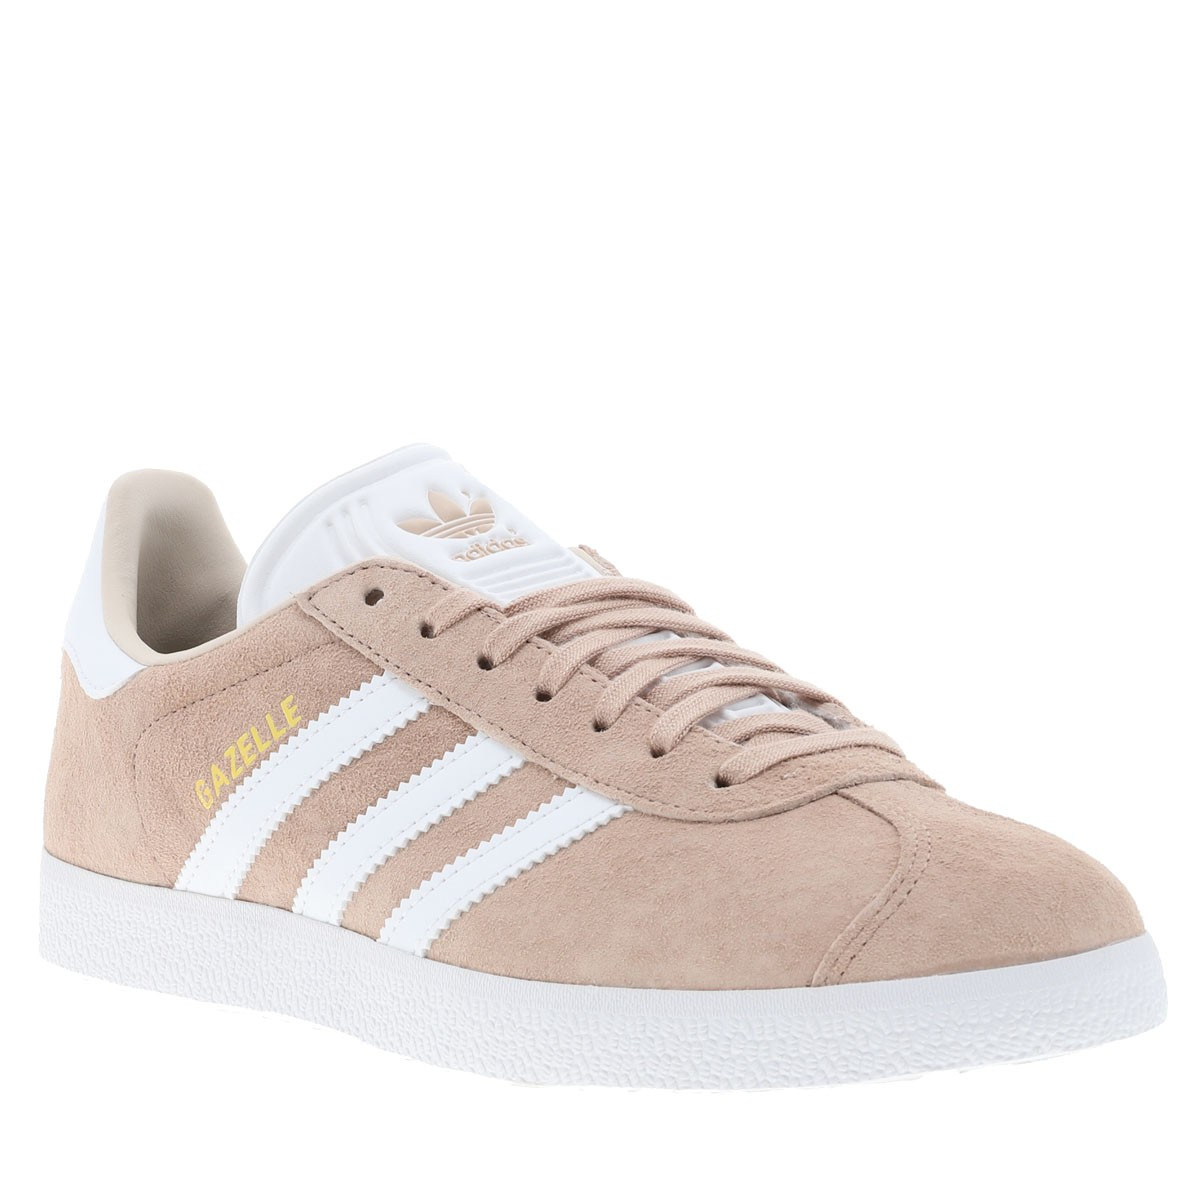 ADIDAS ORIGINALS Baskets Gazelle femme beige